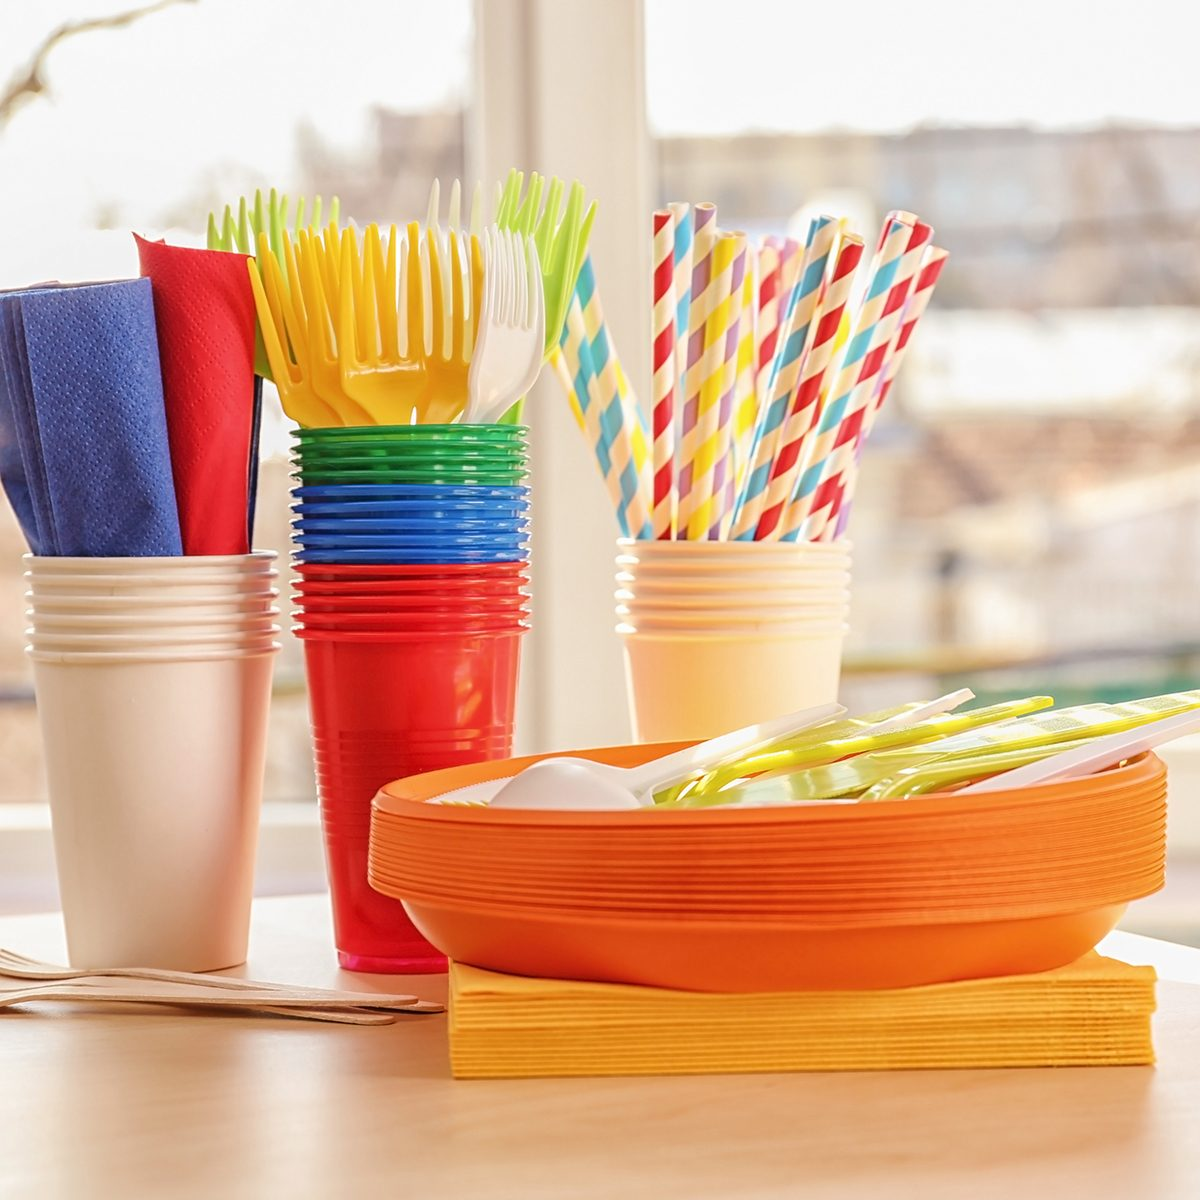 Colorful plastic ware for picnic on table